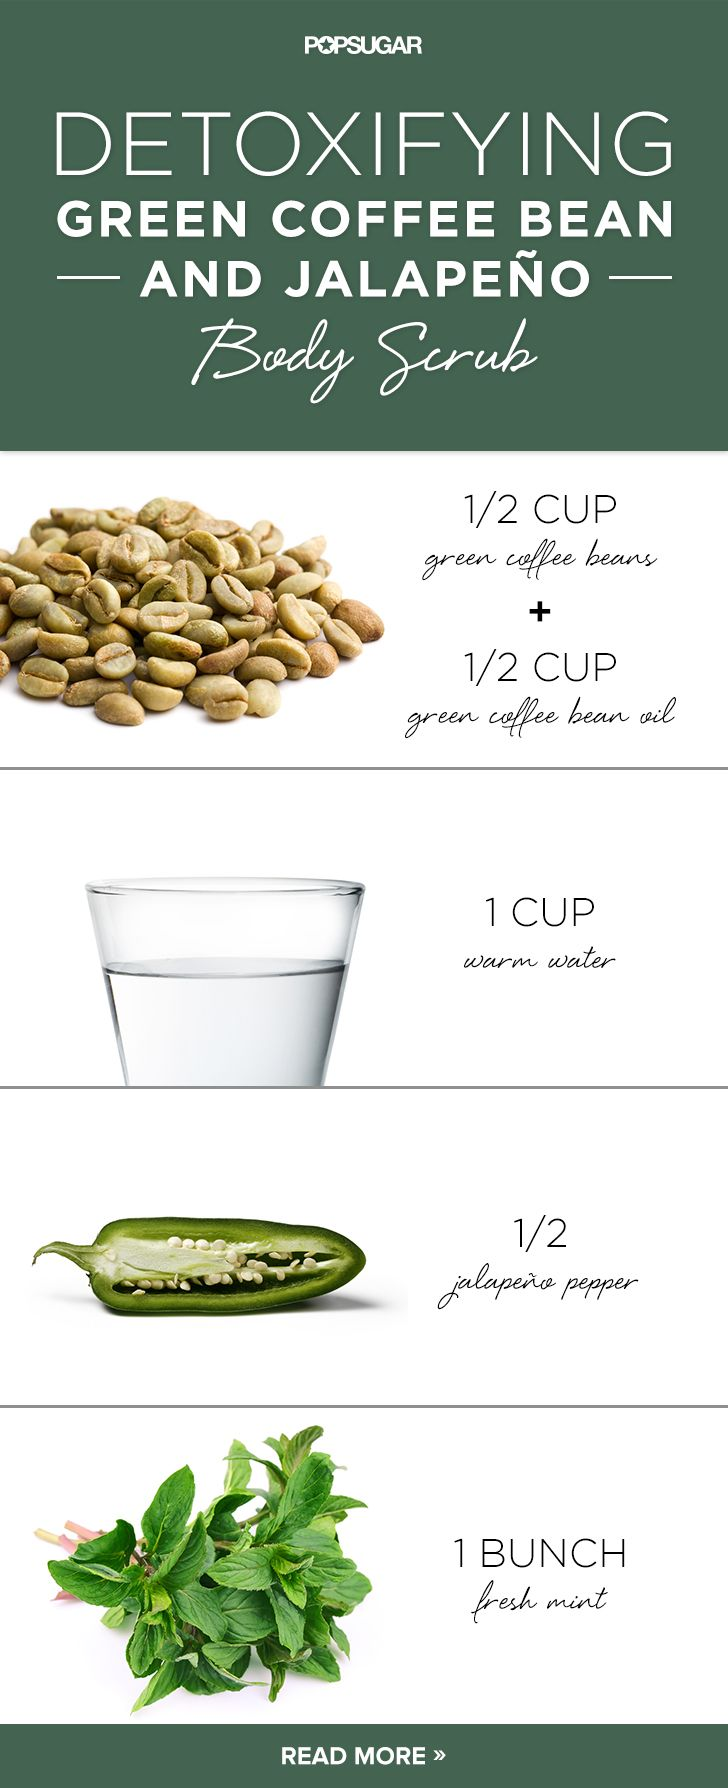 Detox Your Skin With This Green Coffee Bean And Jalapeno Body